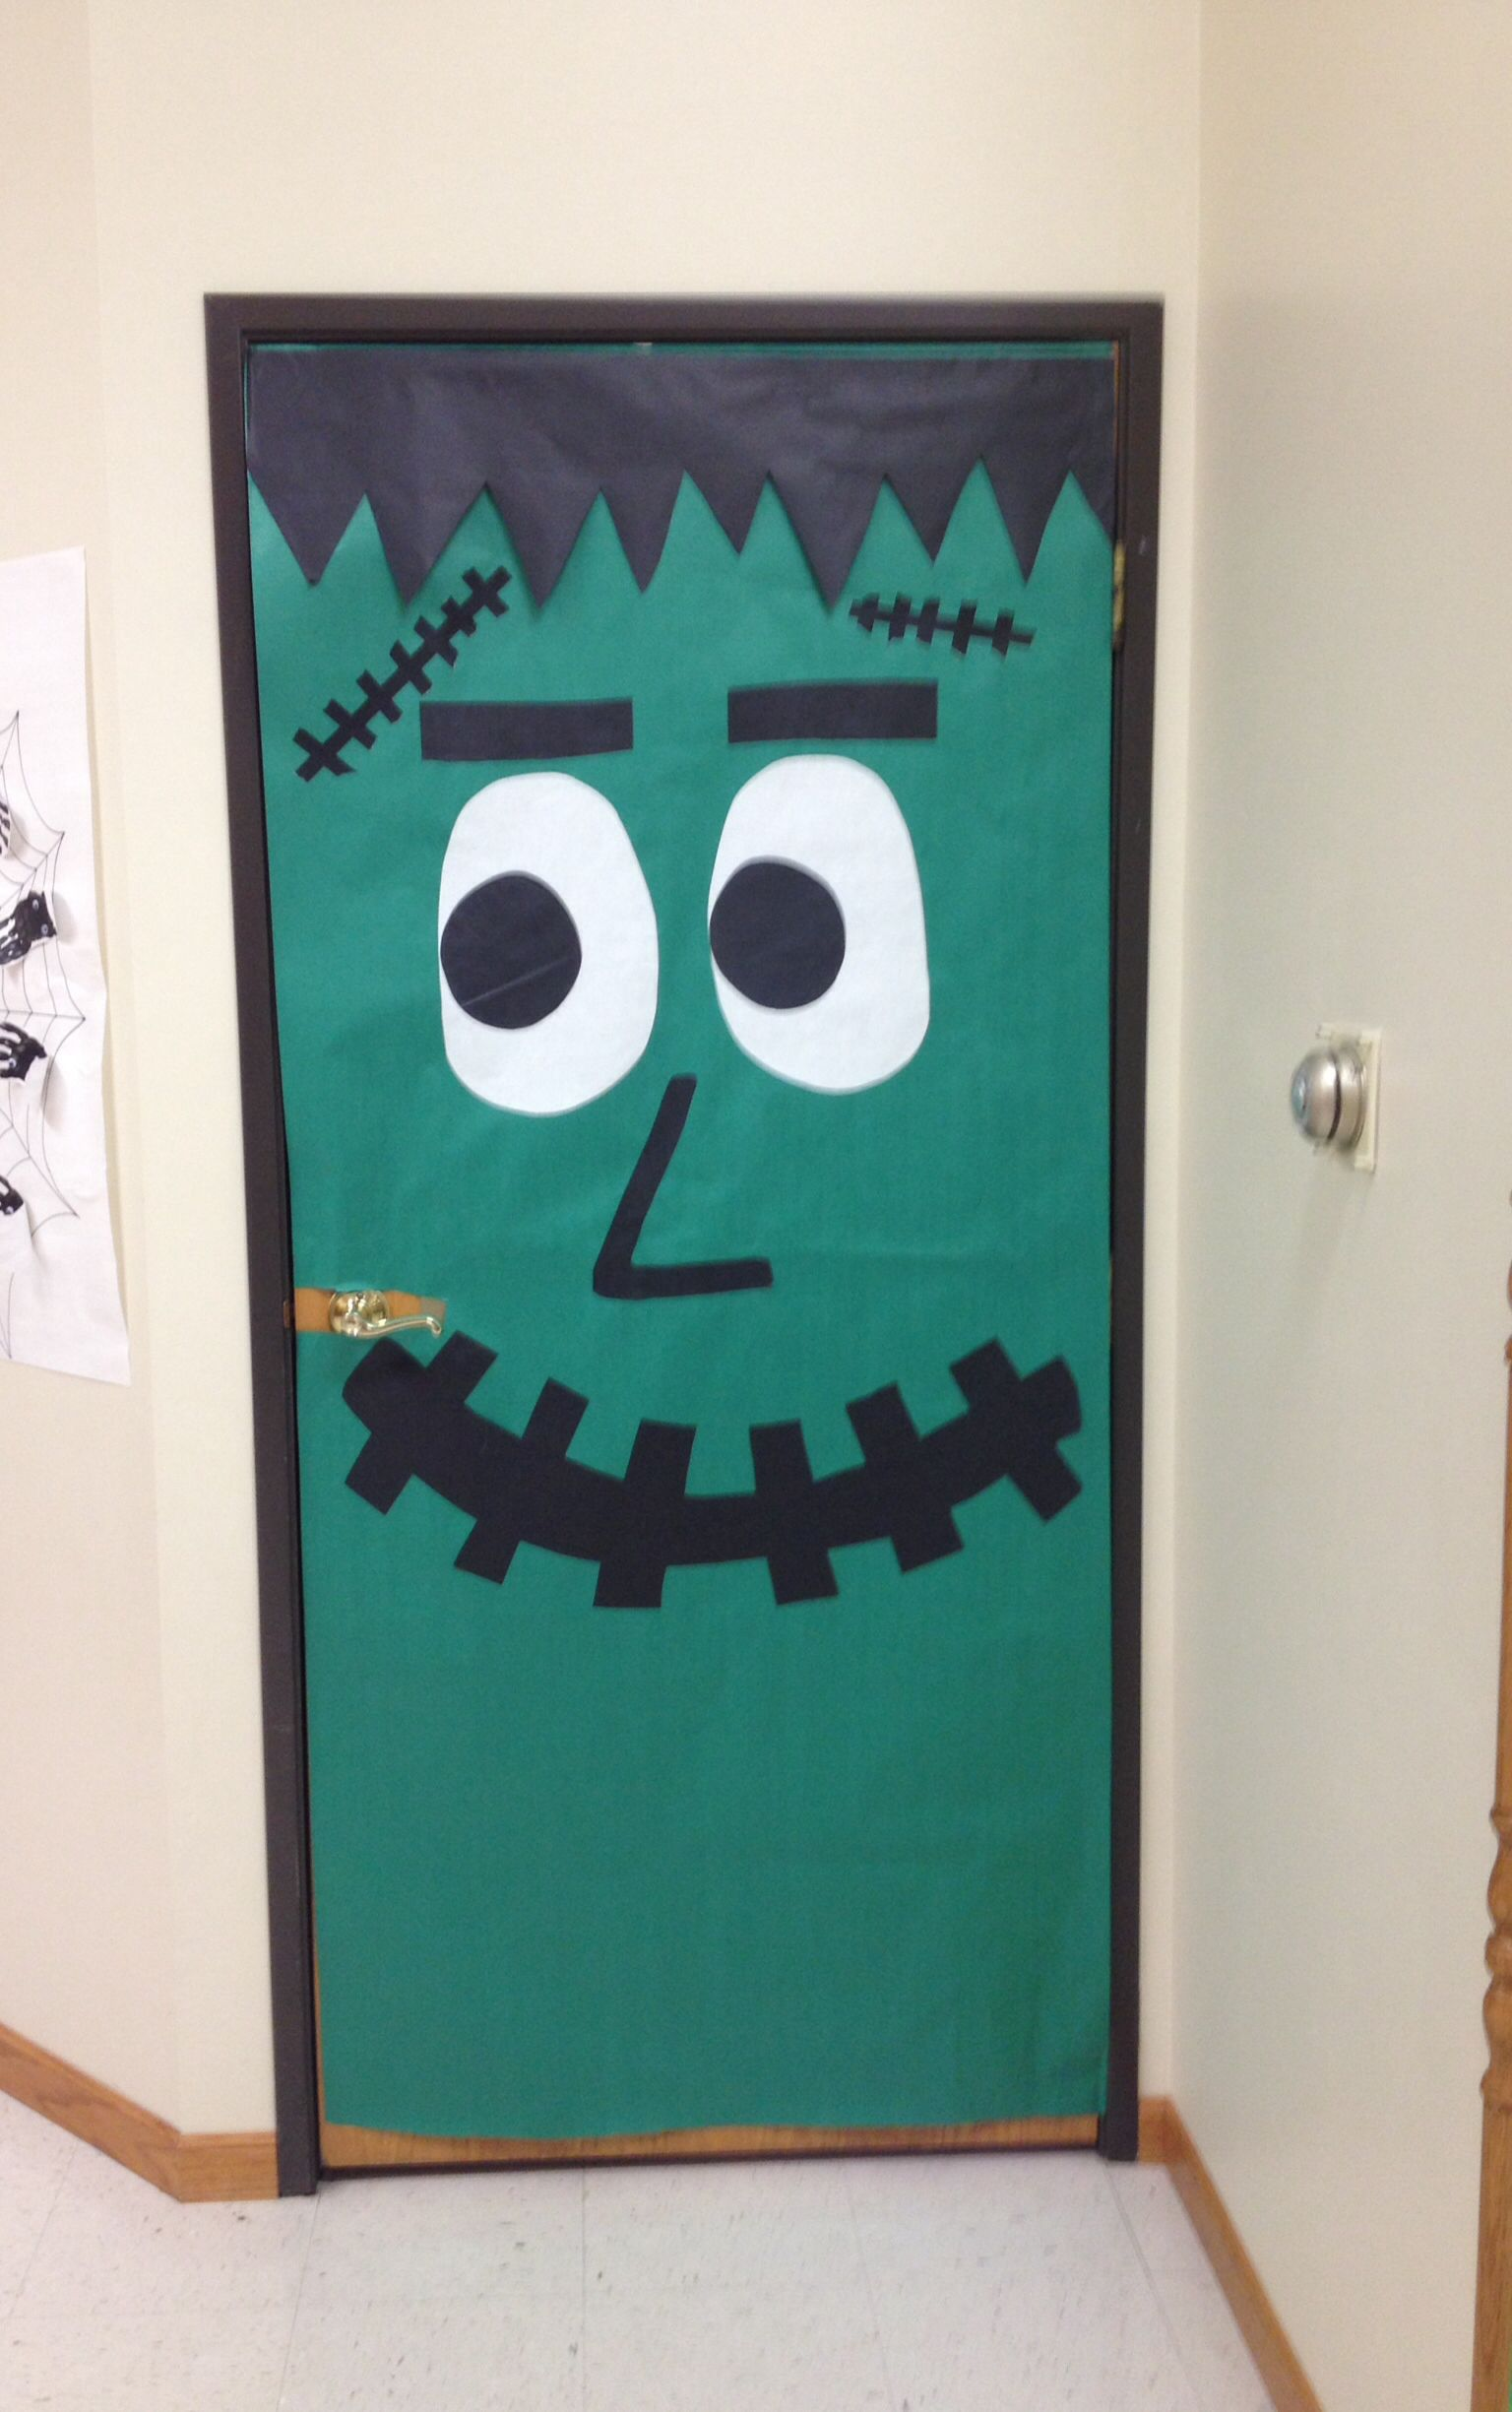 Frankenstein door decoration for Halloween teaching Pinterest - Halloween Door Decorations